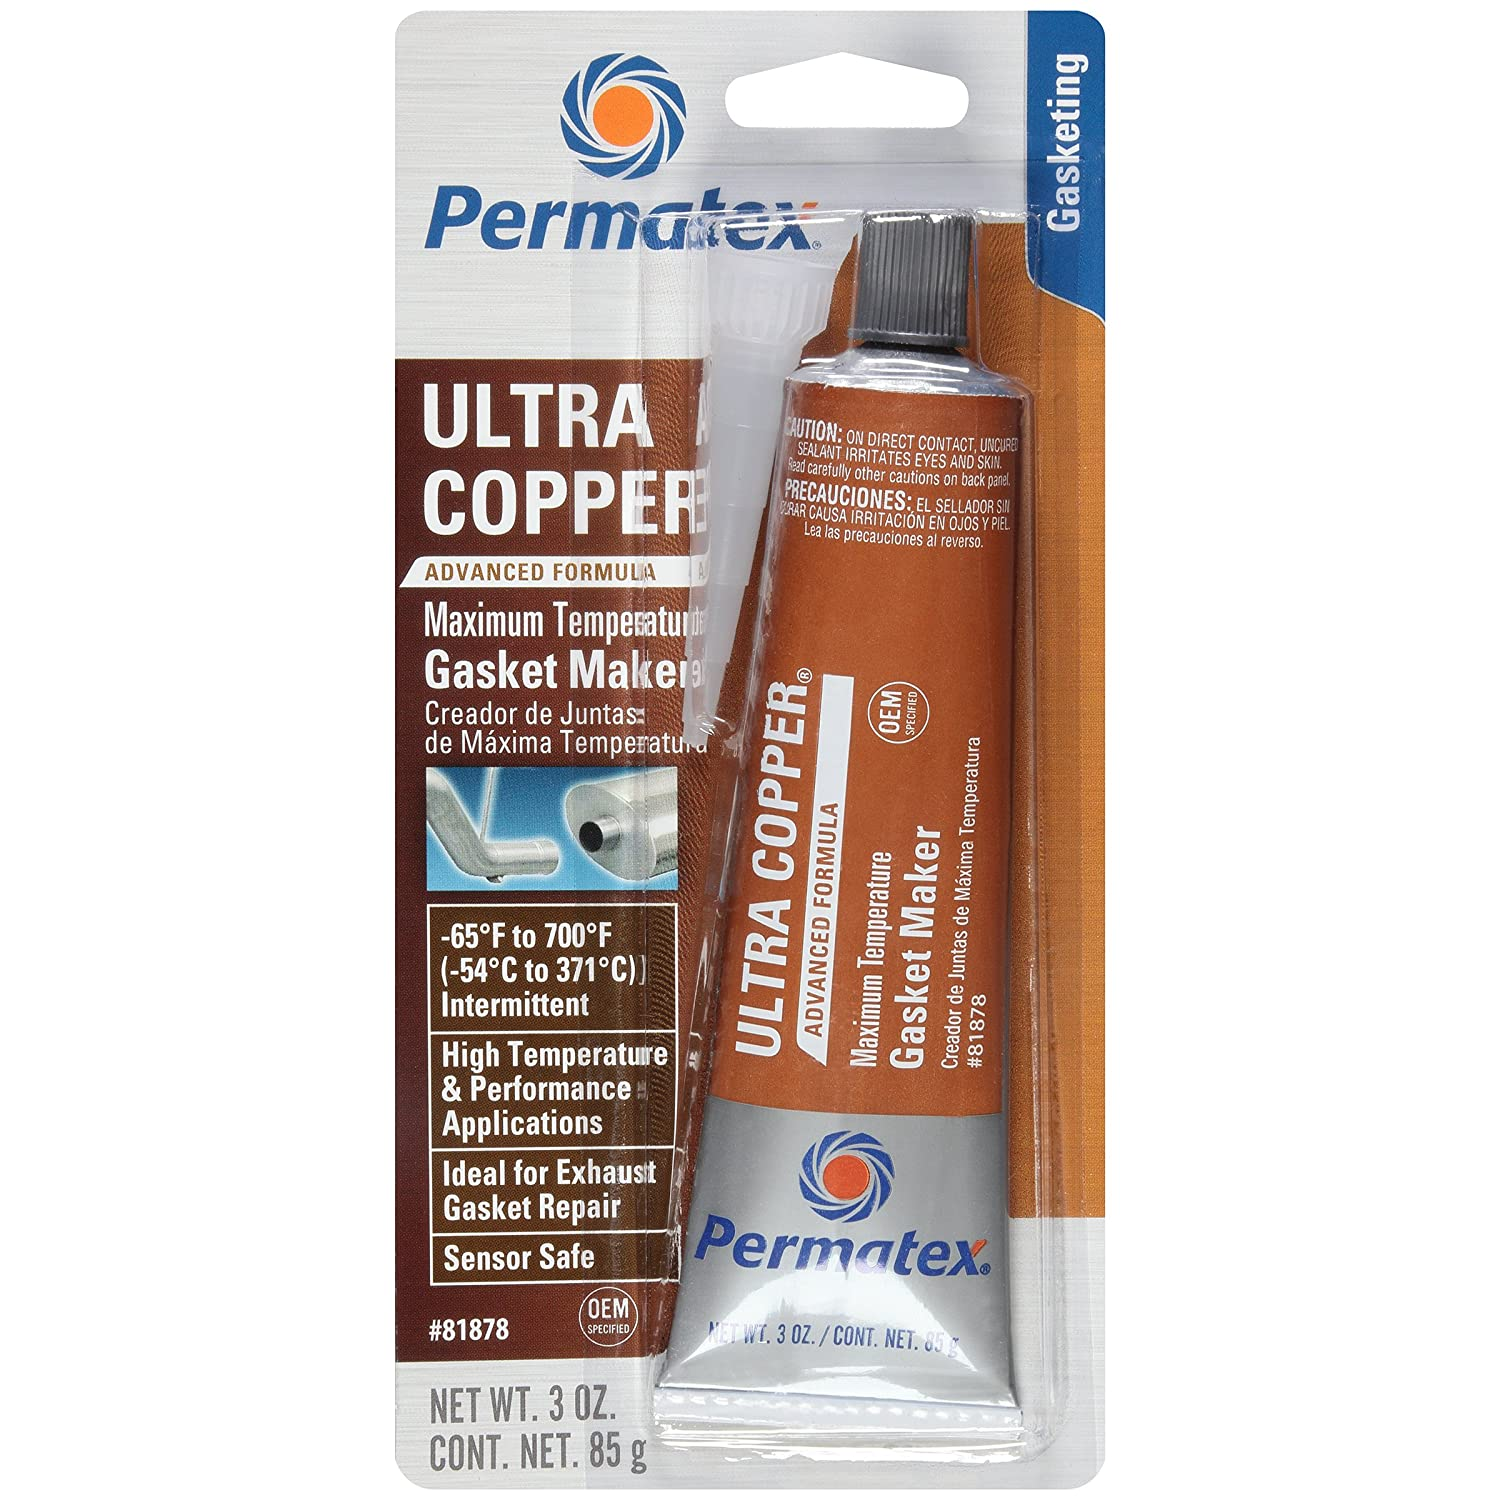 Permatex 230-81878 # 101 Ultra Copper Temp-rature maximale Gasket Maker 3OZ